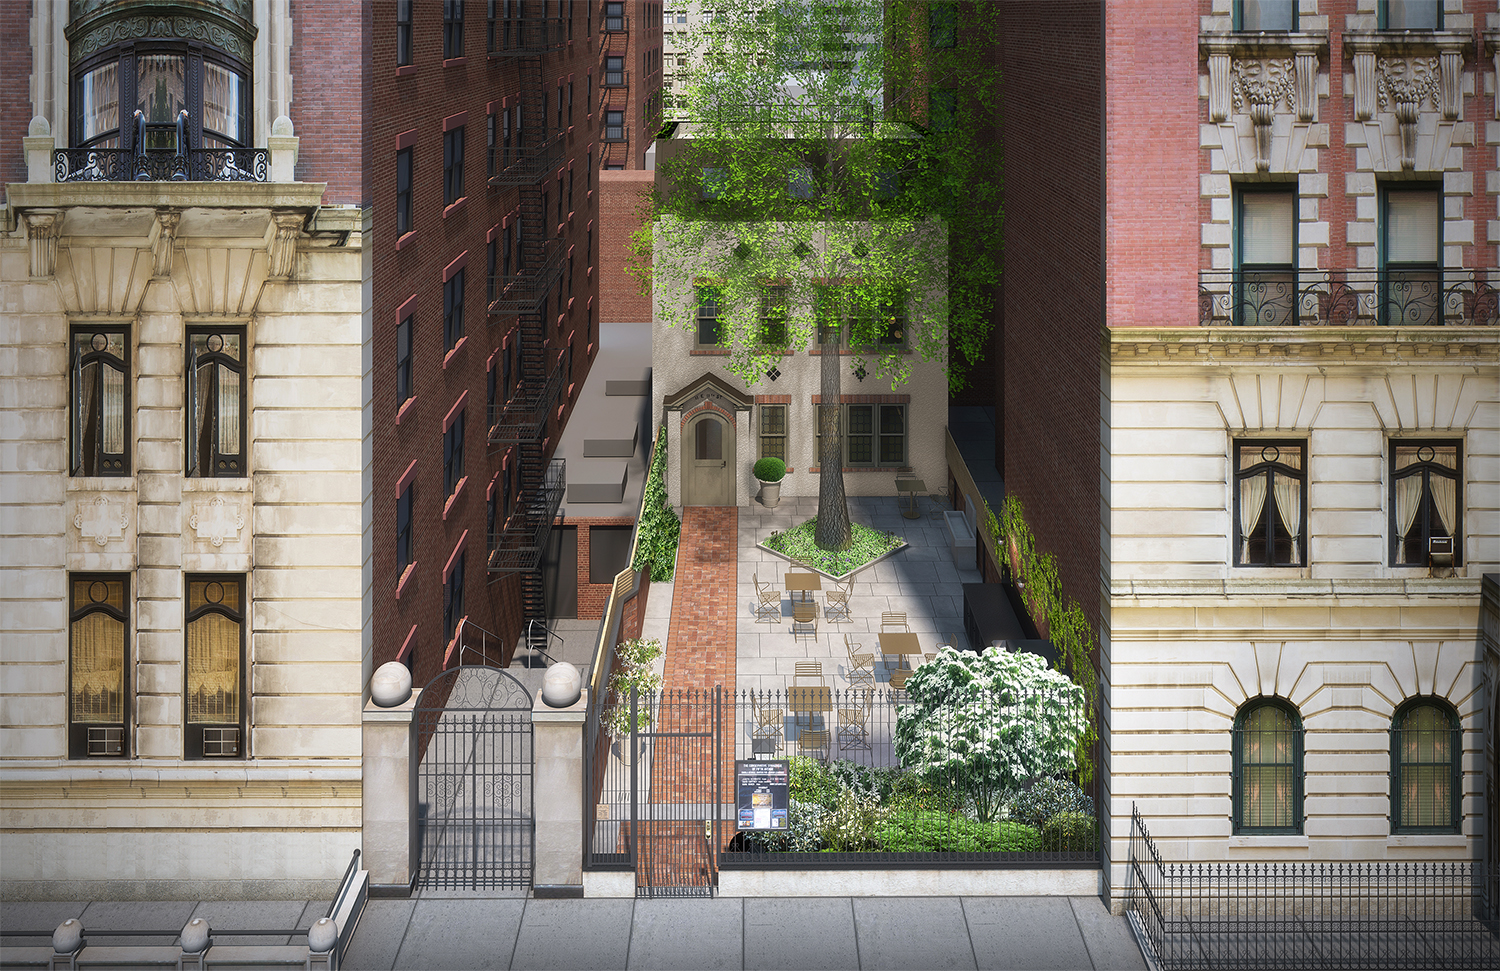 Proposed expansion of the Conservative Synagogue of Fifth Avenue, 11 East 11th Street.